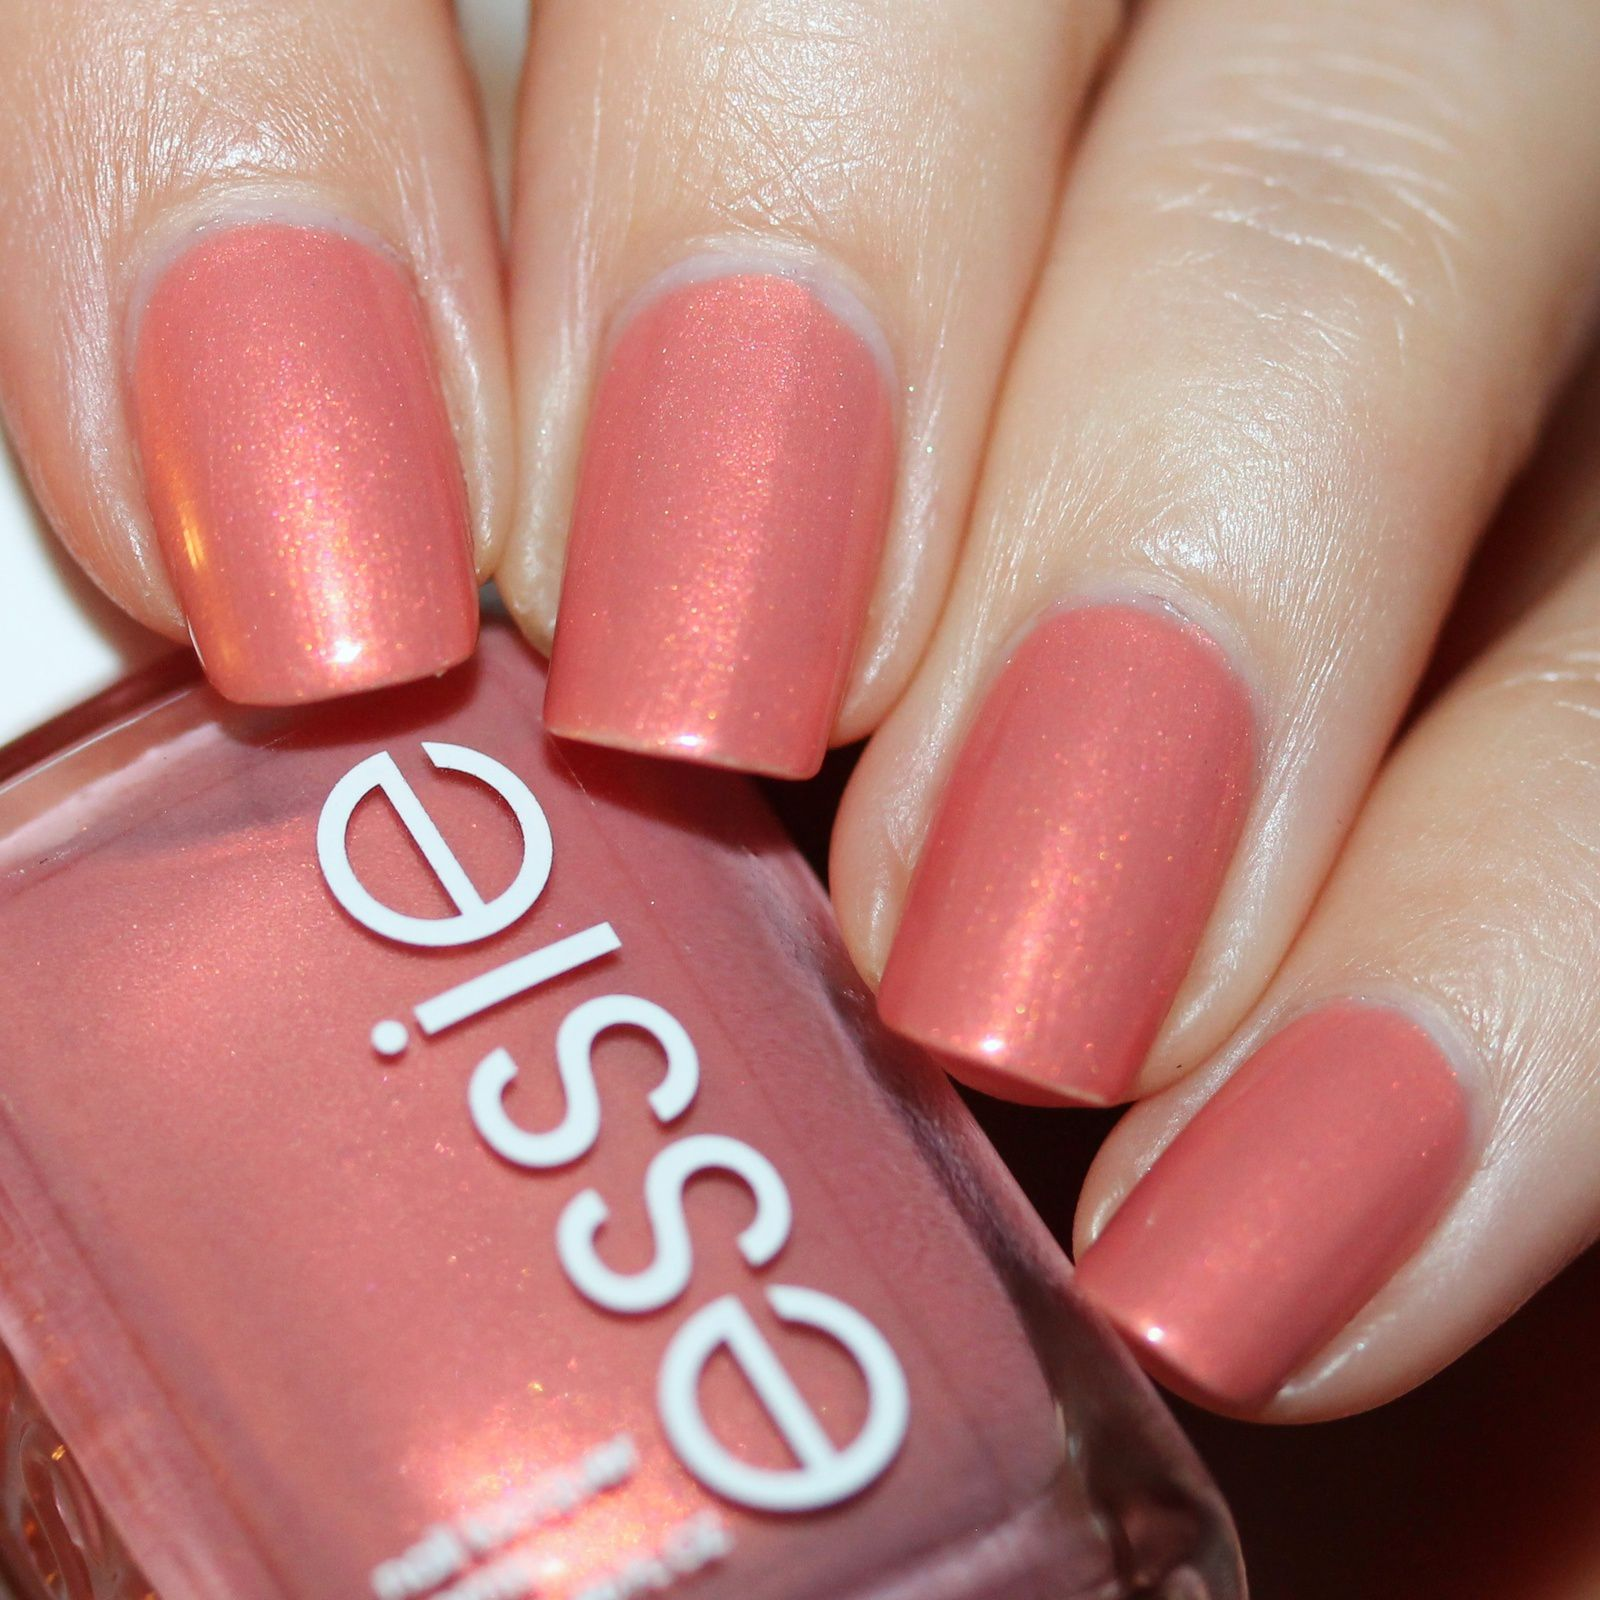 Sally Hansen Complete Care 4-in-1 Extra Moisturizing Nail Treatment / Essie Oh Behave! / Poshe Top Coat